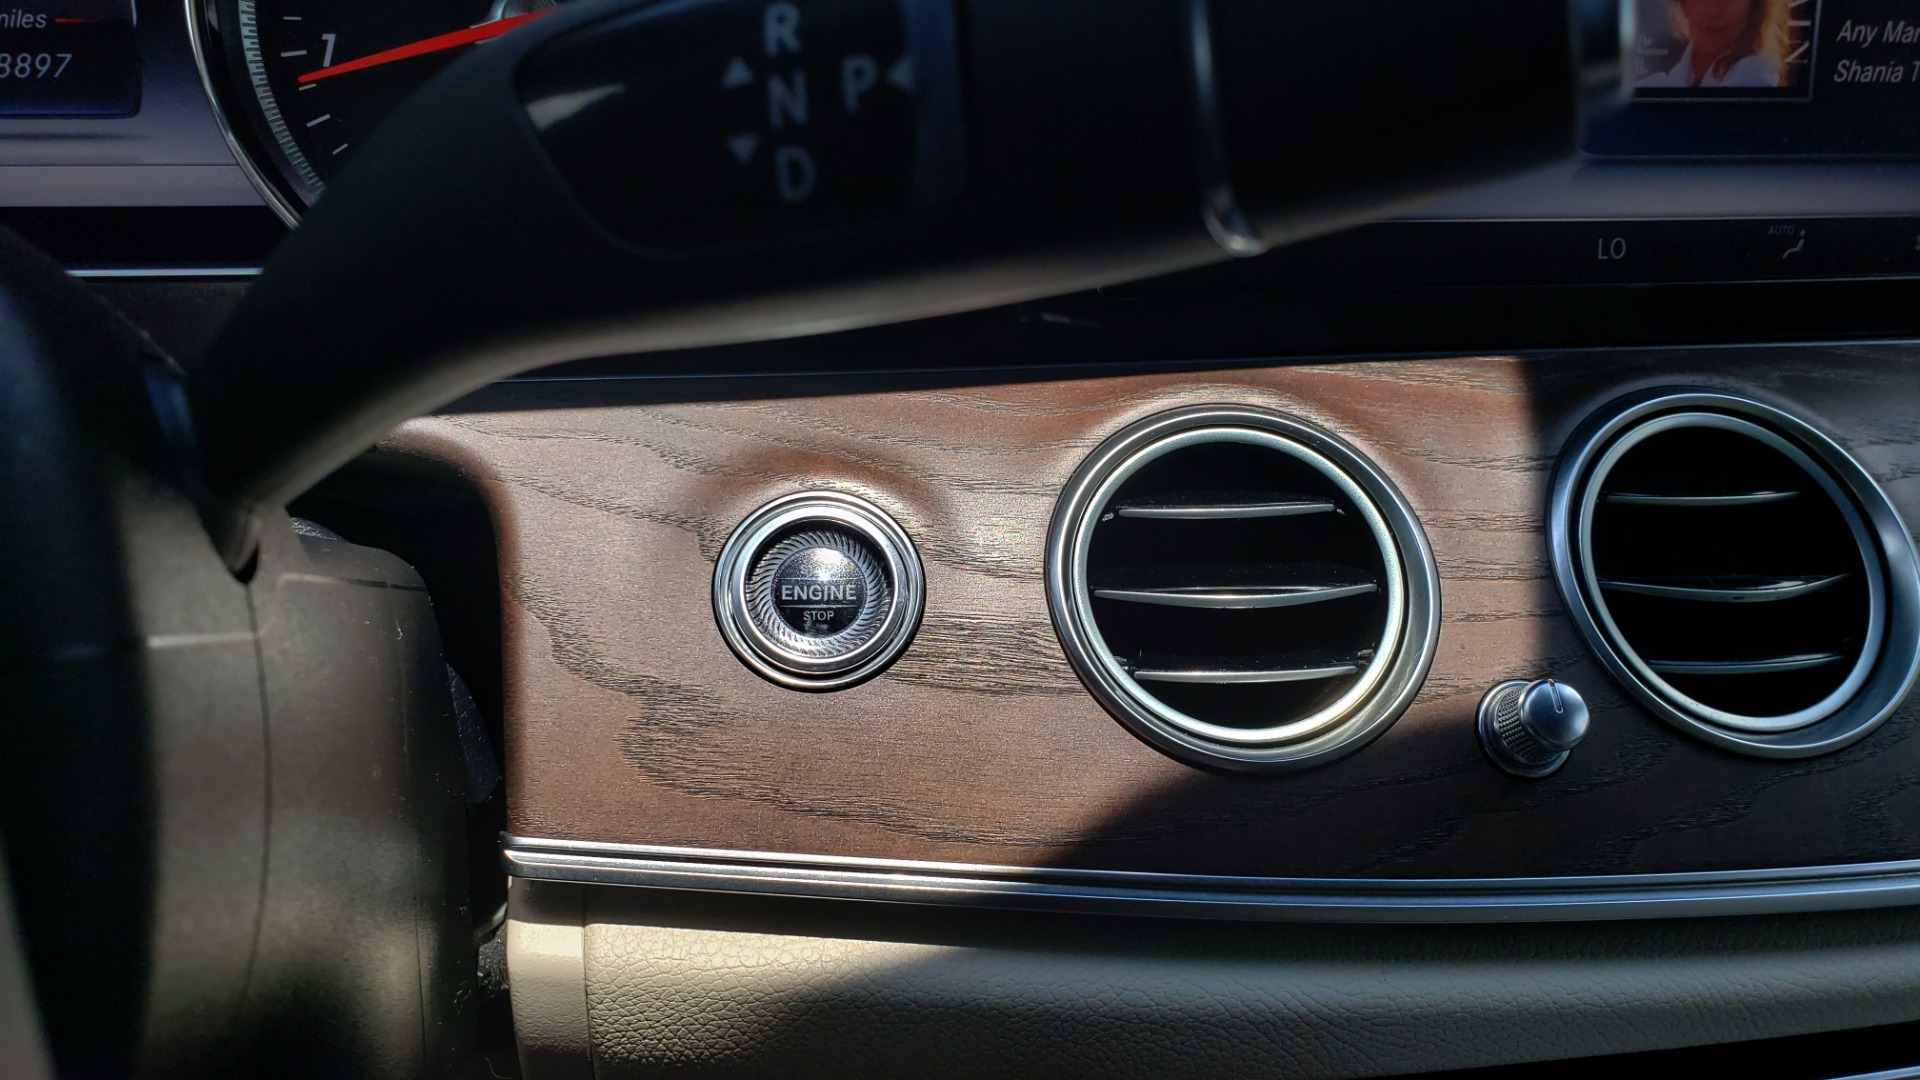 Used 2017 Mercedes-Benz E-CLASS E 300 PREMIUM / SPORT / NAV / SUNROOF / HTD STS / BSM / REARVIEW for sale $27,995 at Formula Imports in Charlotte NC 28227 38